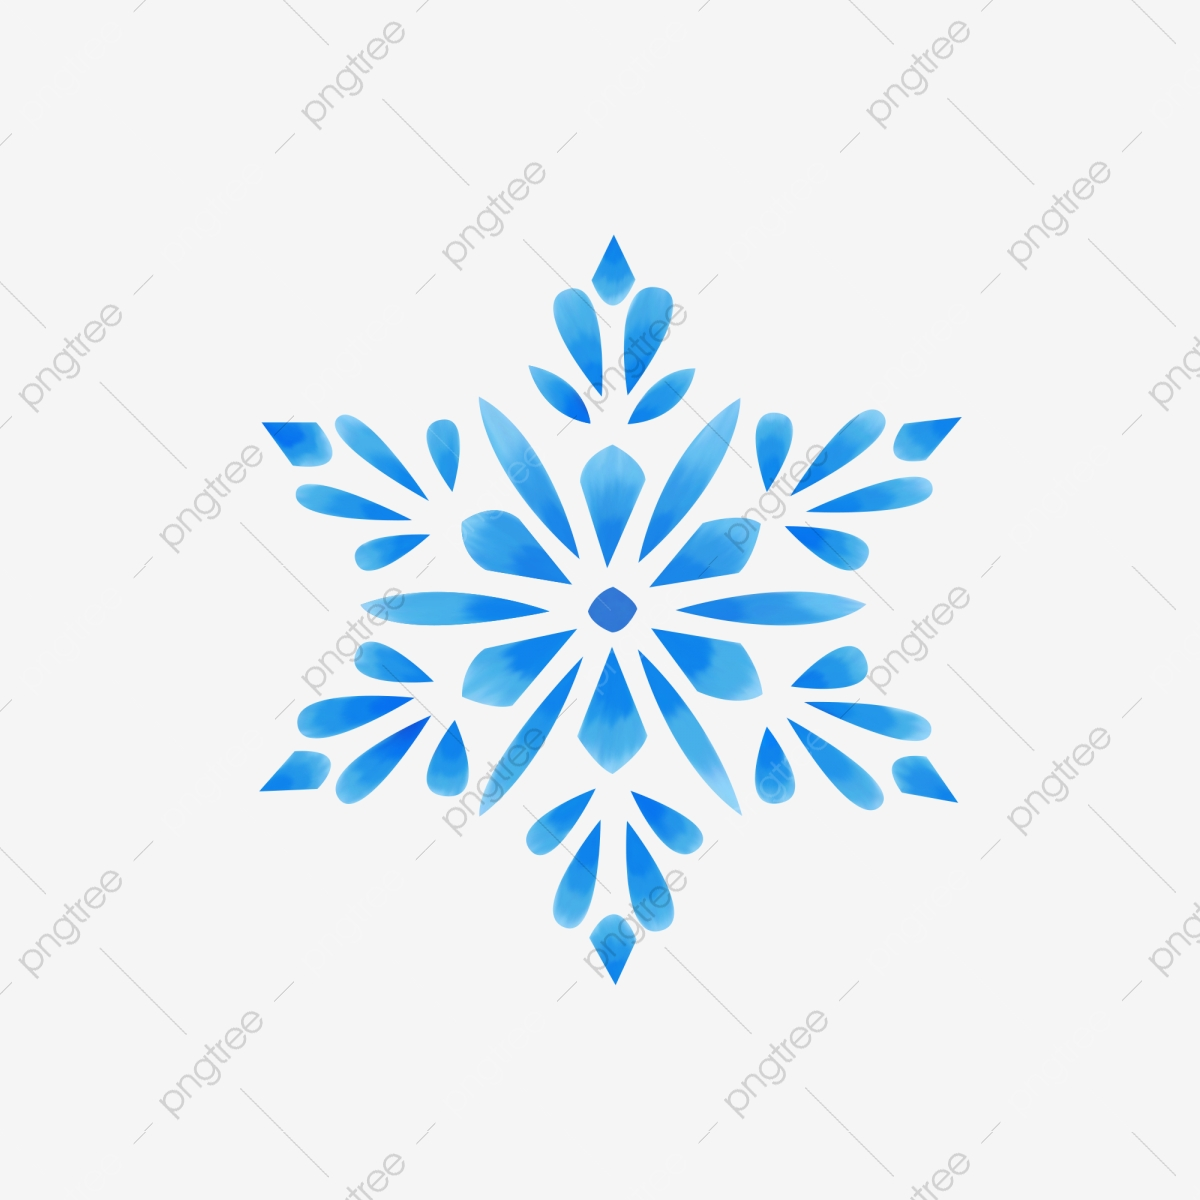 Commercial Use Png Vector Psd And Clipart With Transparent Background For Free Download Pngtree